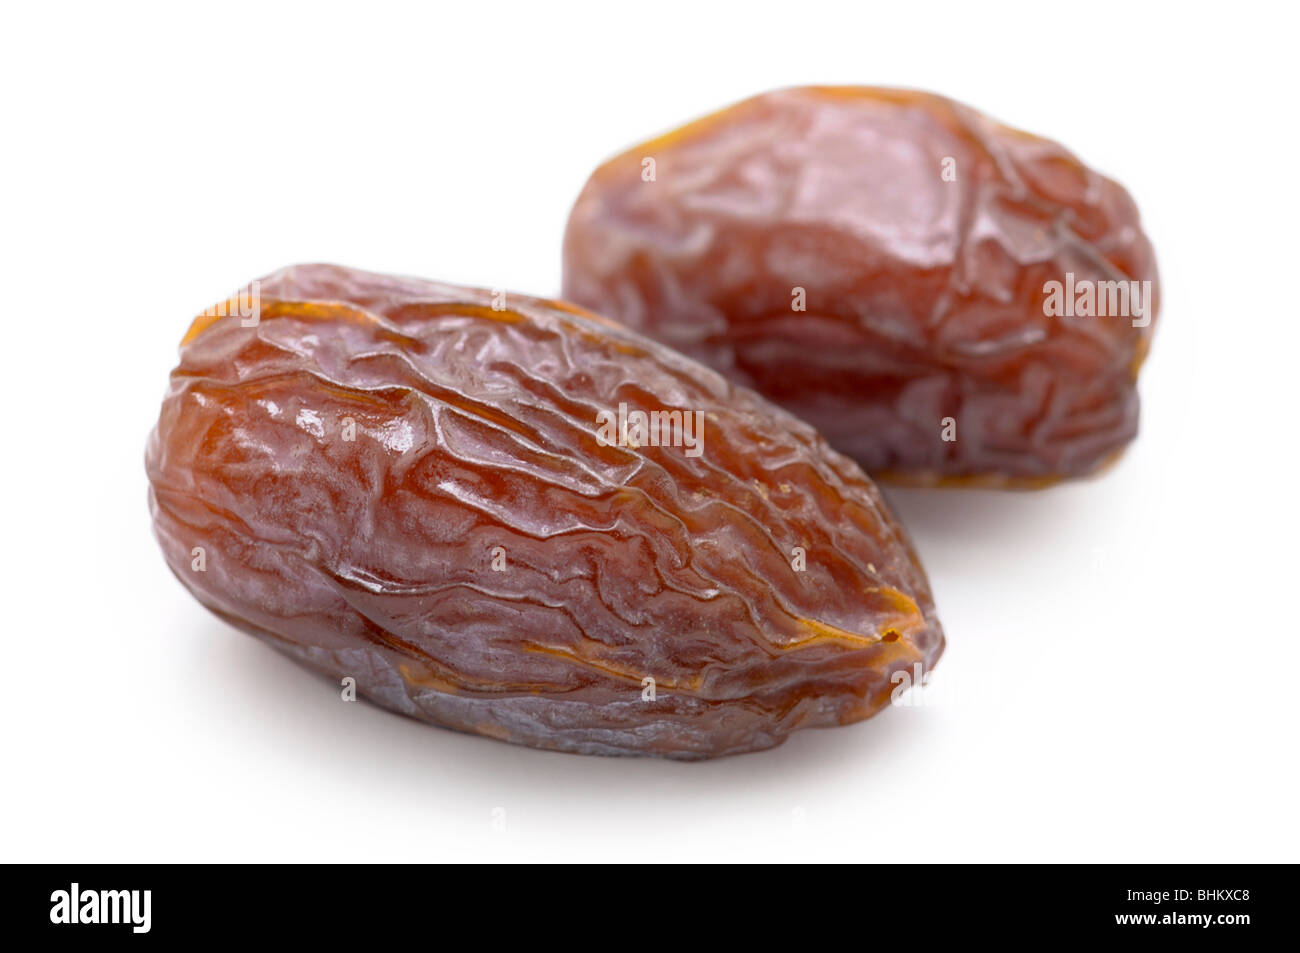 Dates - Stock Image